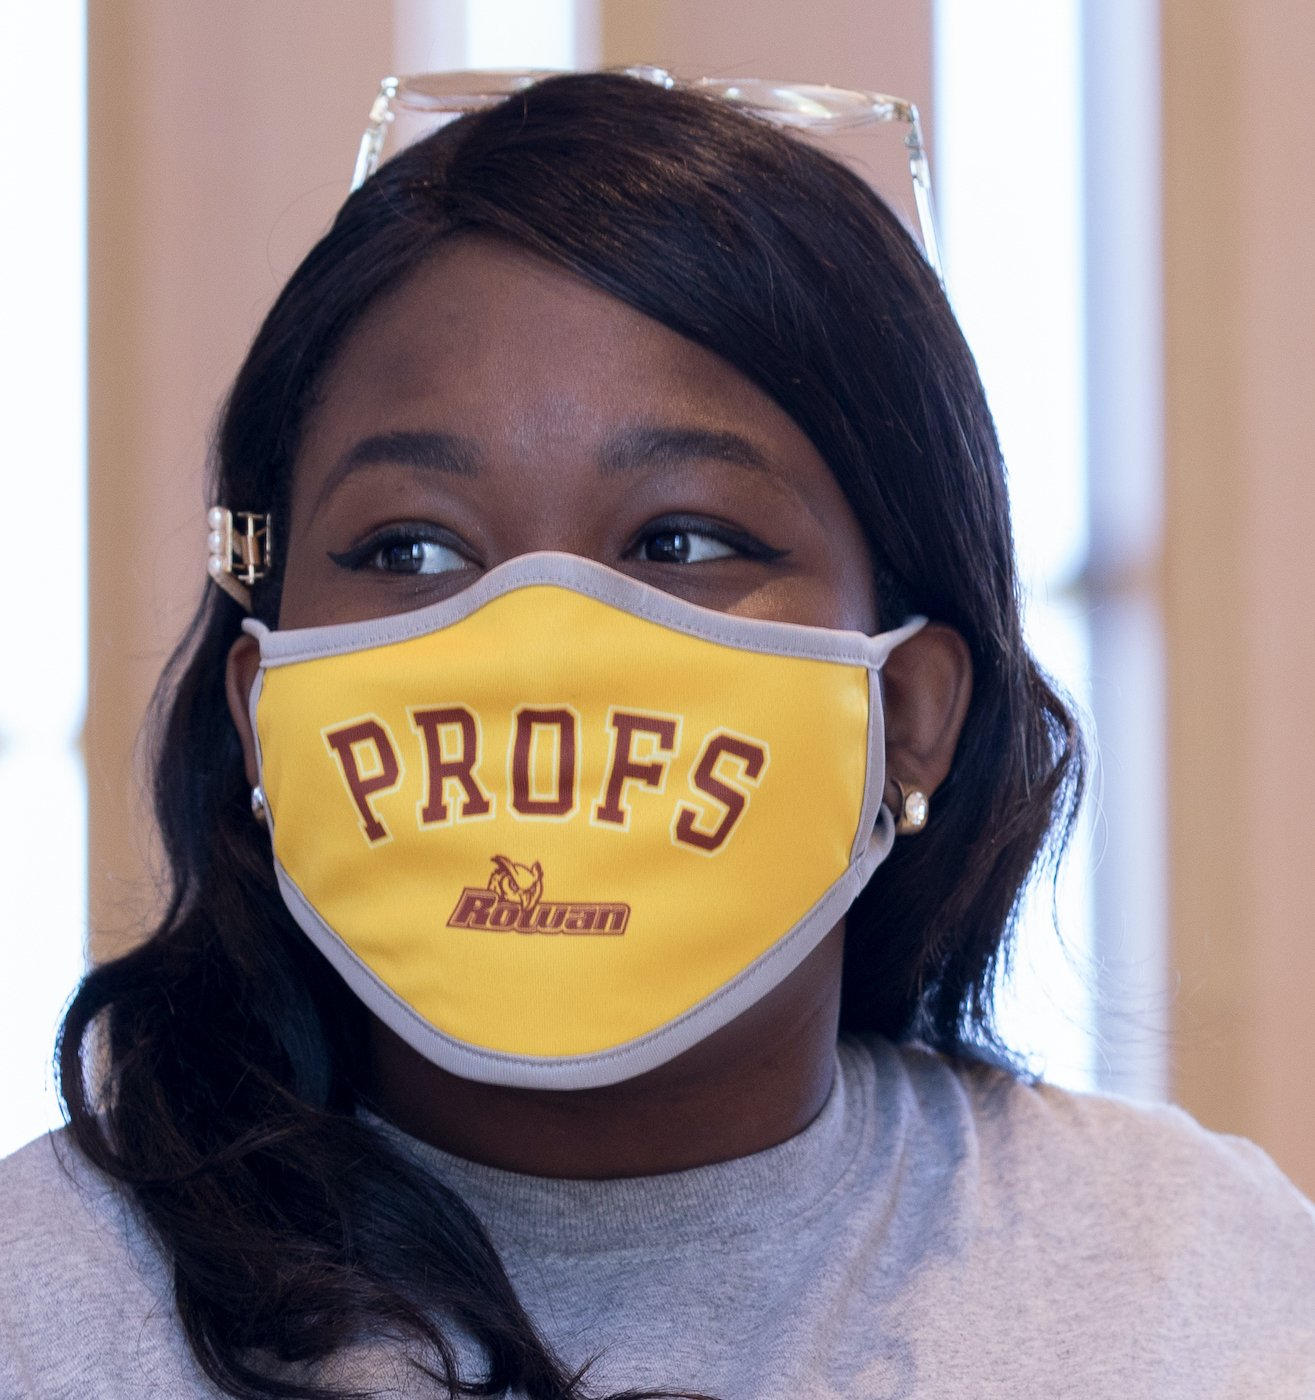 Girl gazing into the distance wearing a yellow Profs face mask.